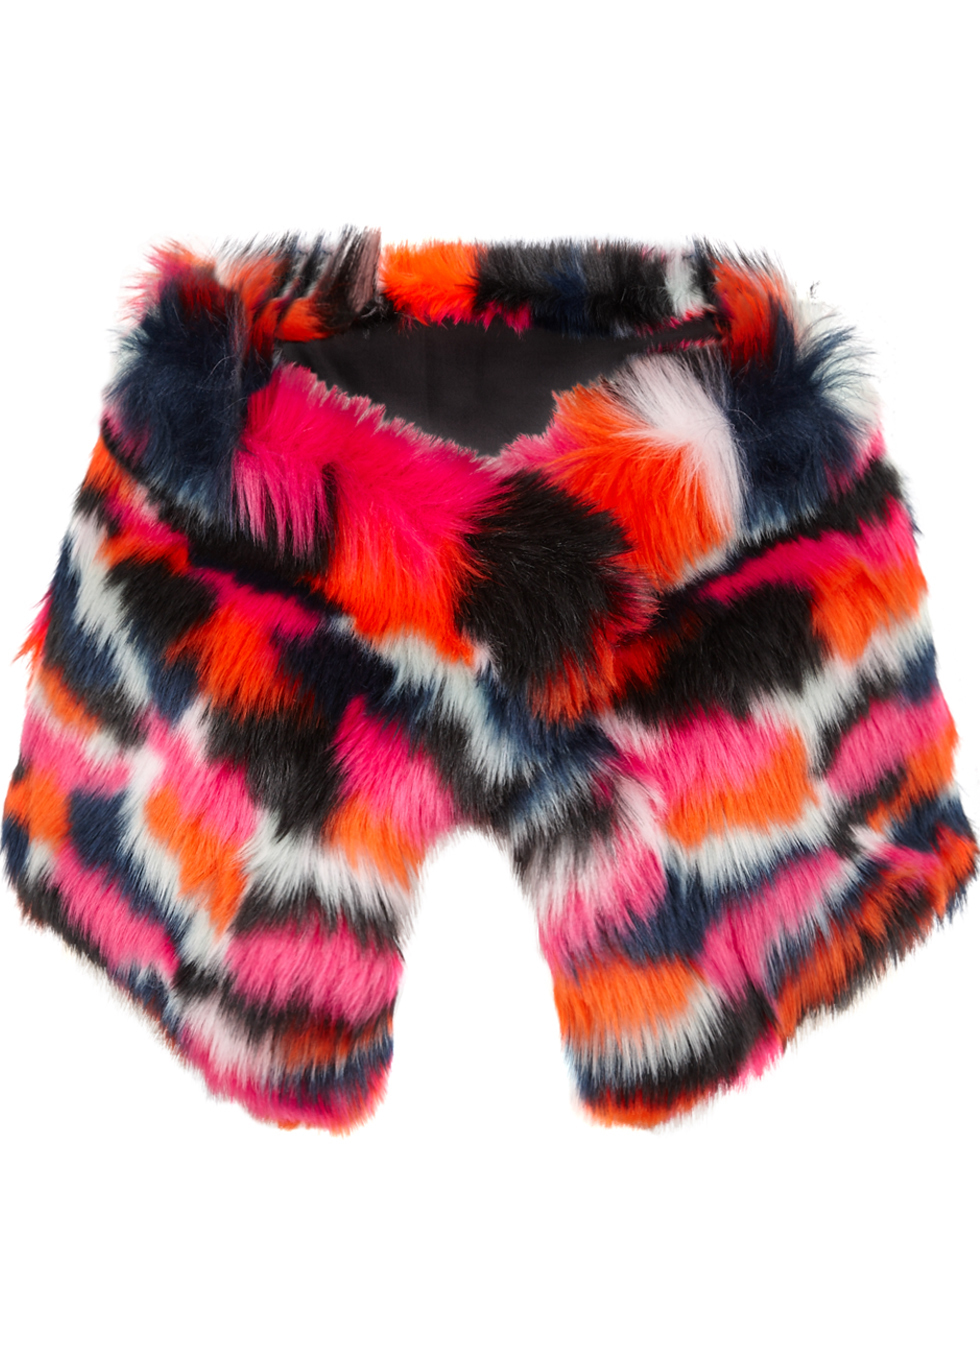 Faux Fur Scarf - predominant colour: hot pink; secondary colour: bright orange; occasions: casual, creative work; type of pattern: standard; style: regular; size: large; material: faux fur; pattern: patterned/print; multicoloured: multicoloured; season: a/w 2016; trends: opulent prints